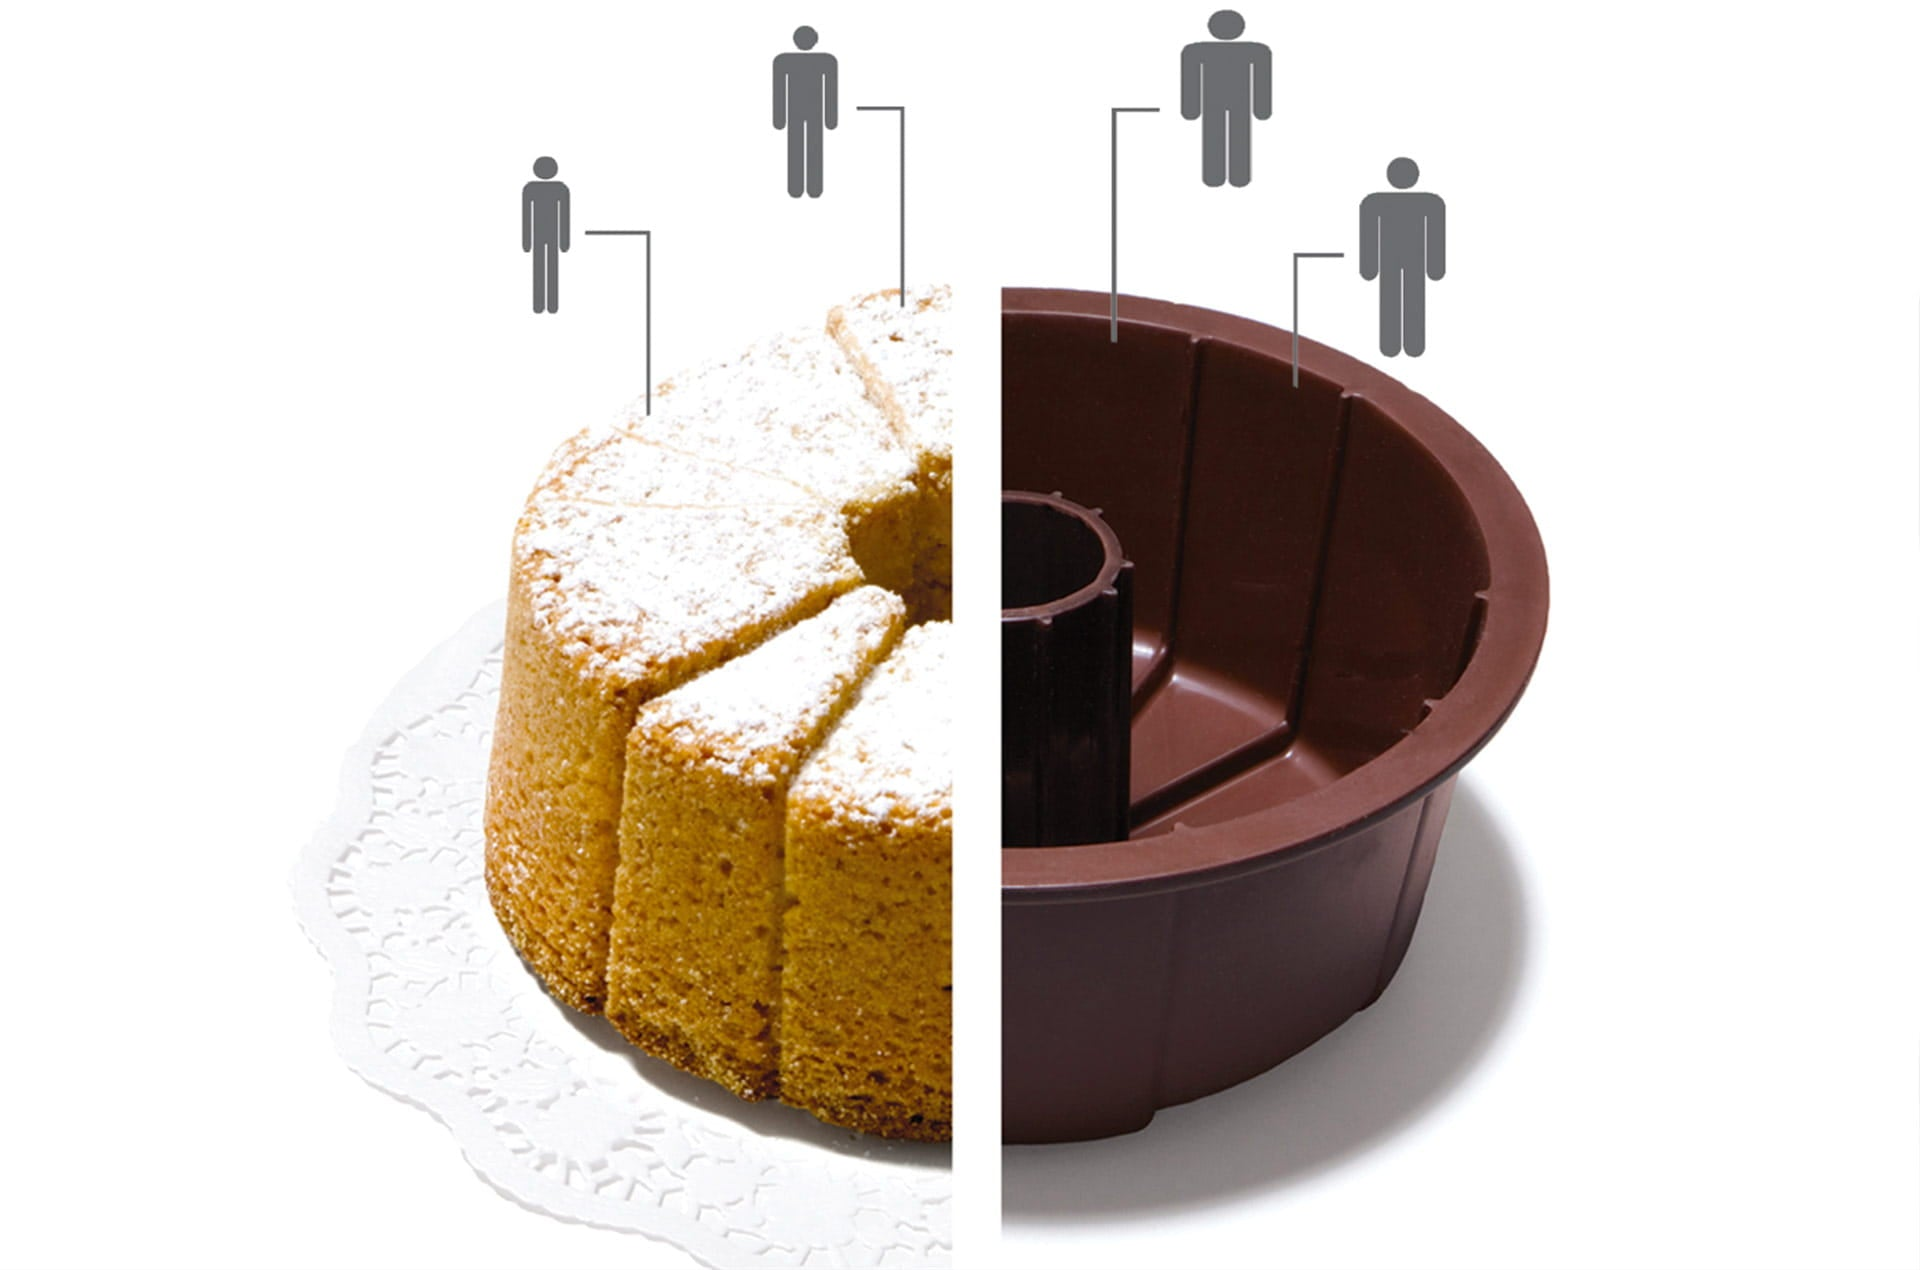 Moule à gâteau silicone Small Cake by Ding3000-en vente sur PARIDEO design durable